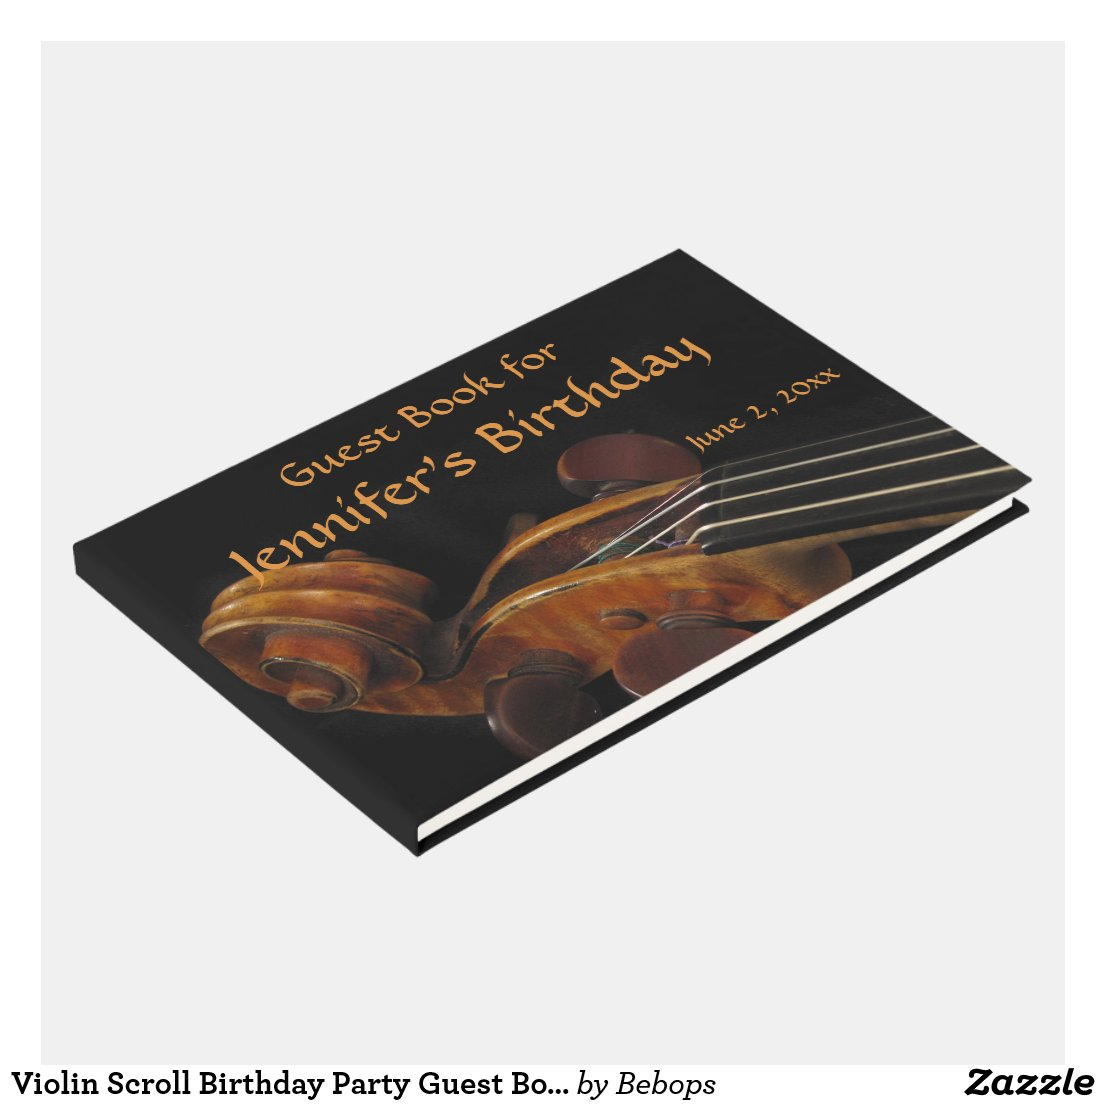 Violin Scroll Birthday Party Guest Book